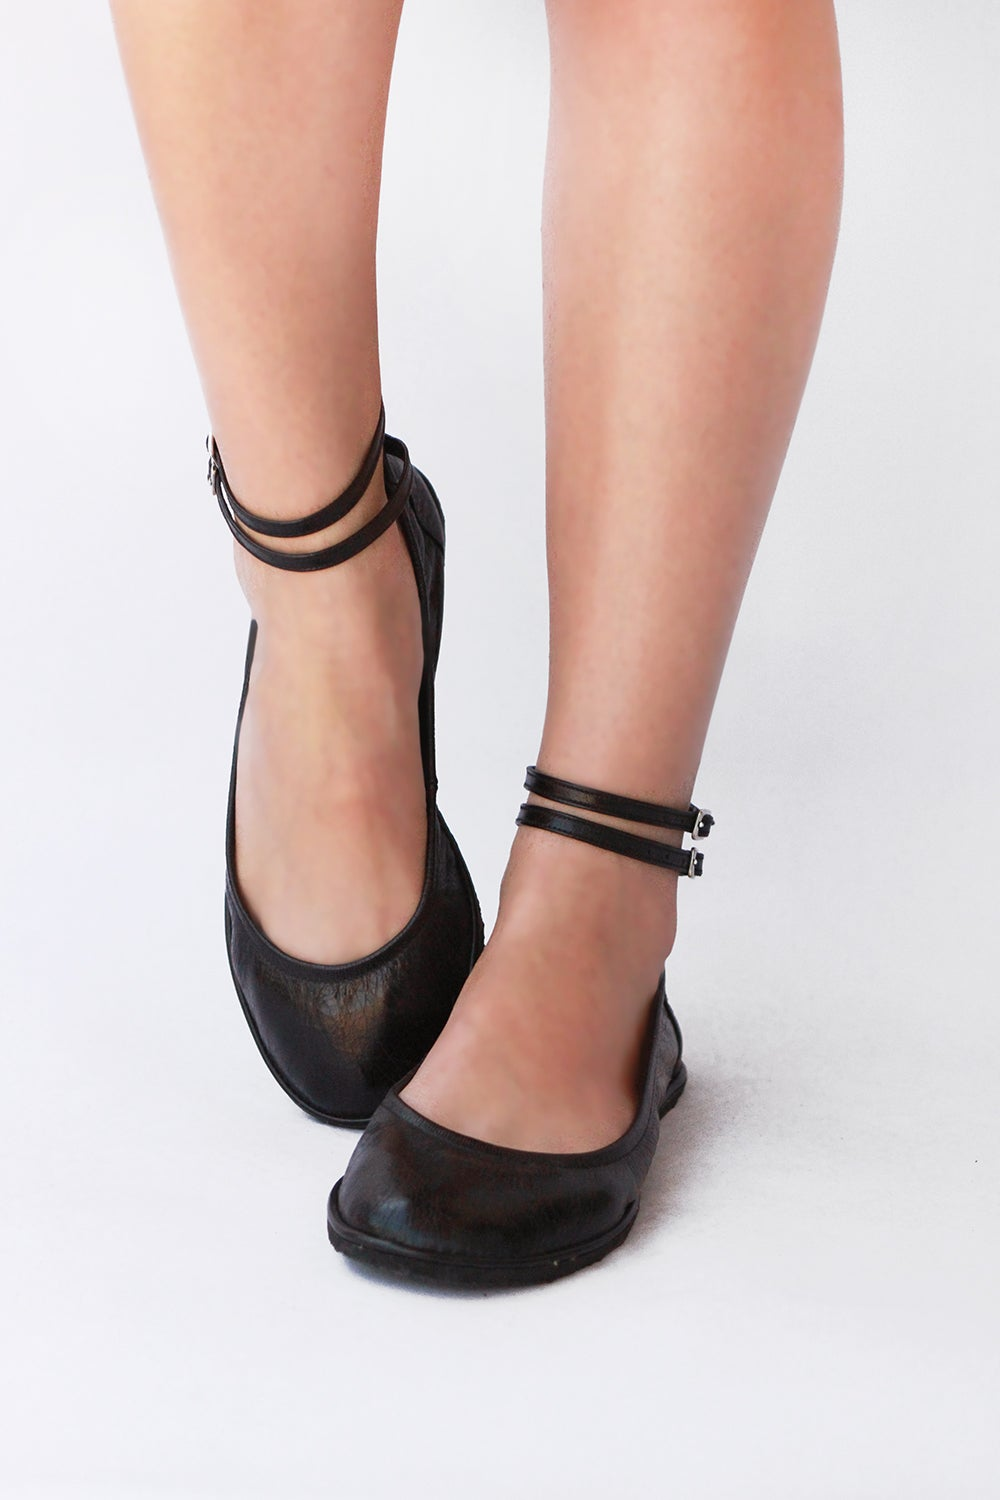 Image of Ballet flats - Two ankle straps